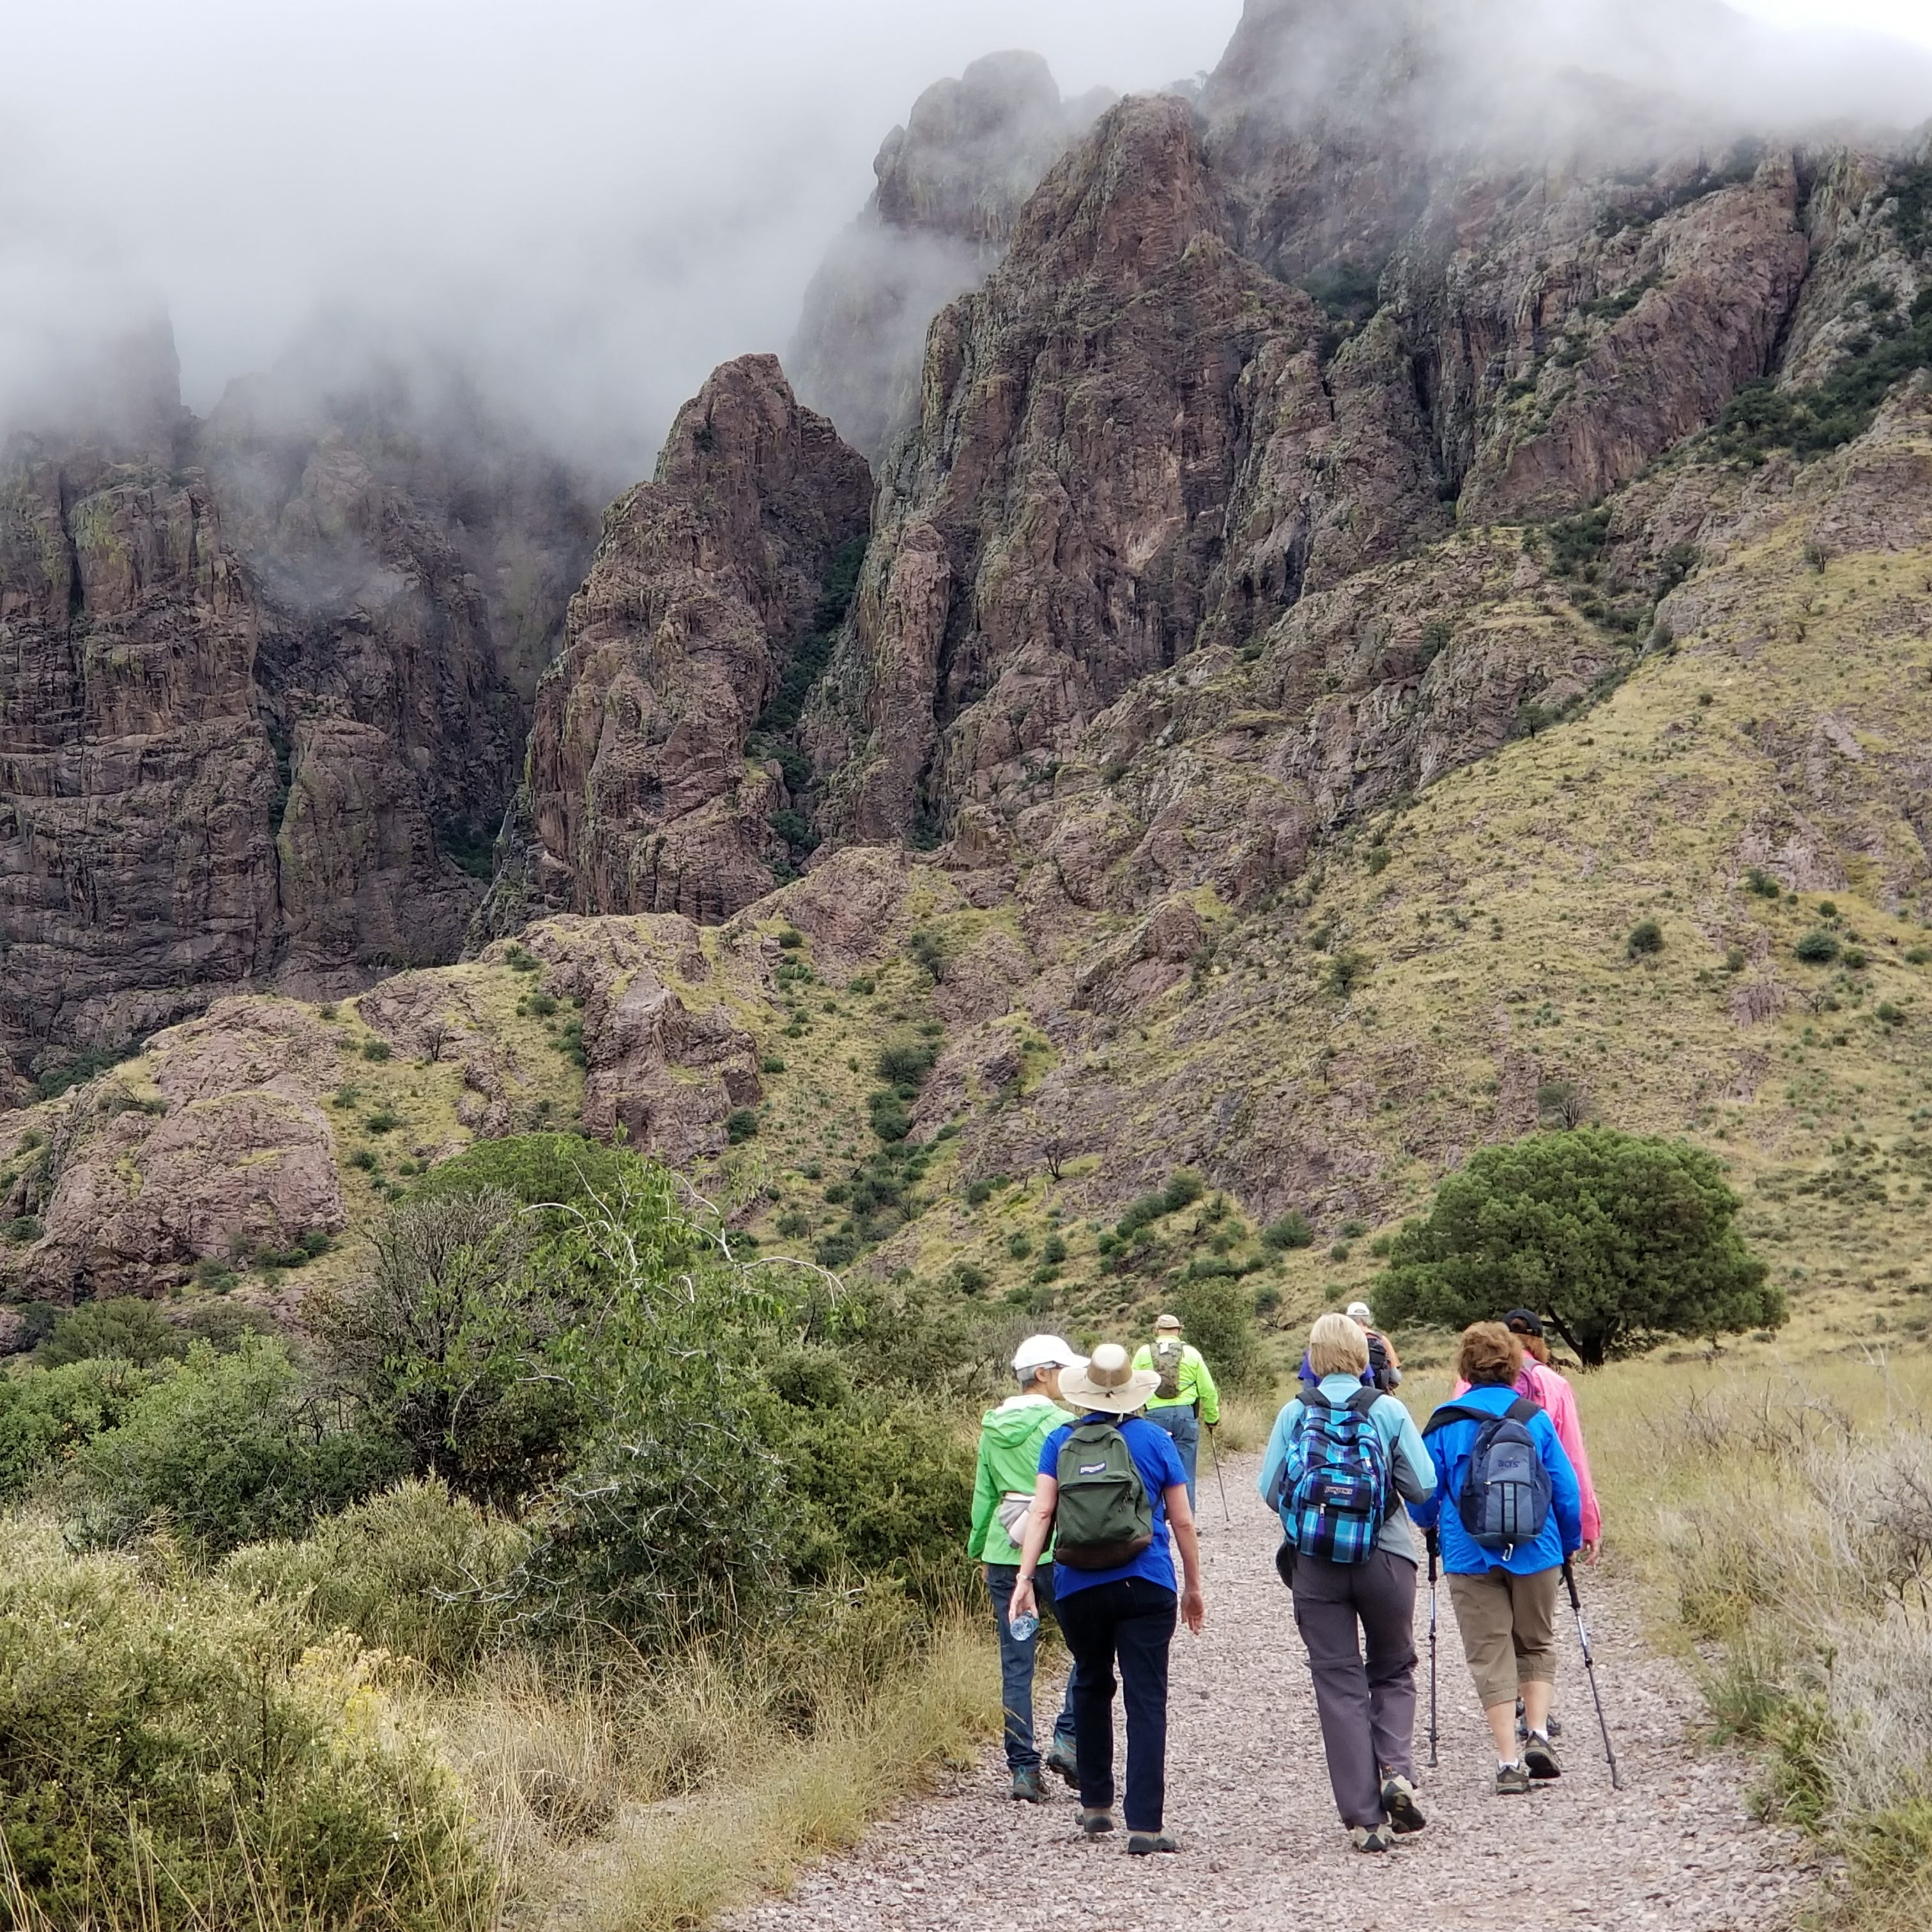 Go hiking and earn prizes for a good cause when you join the Soroptimist Challenge